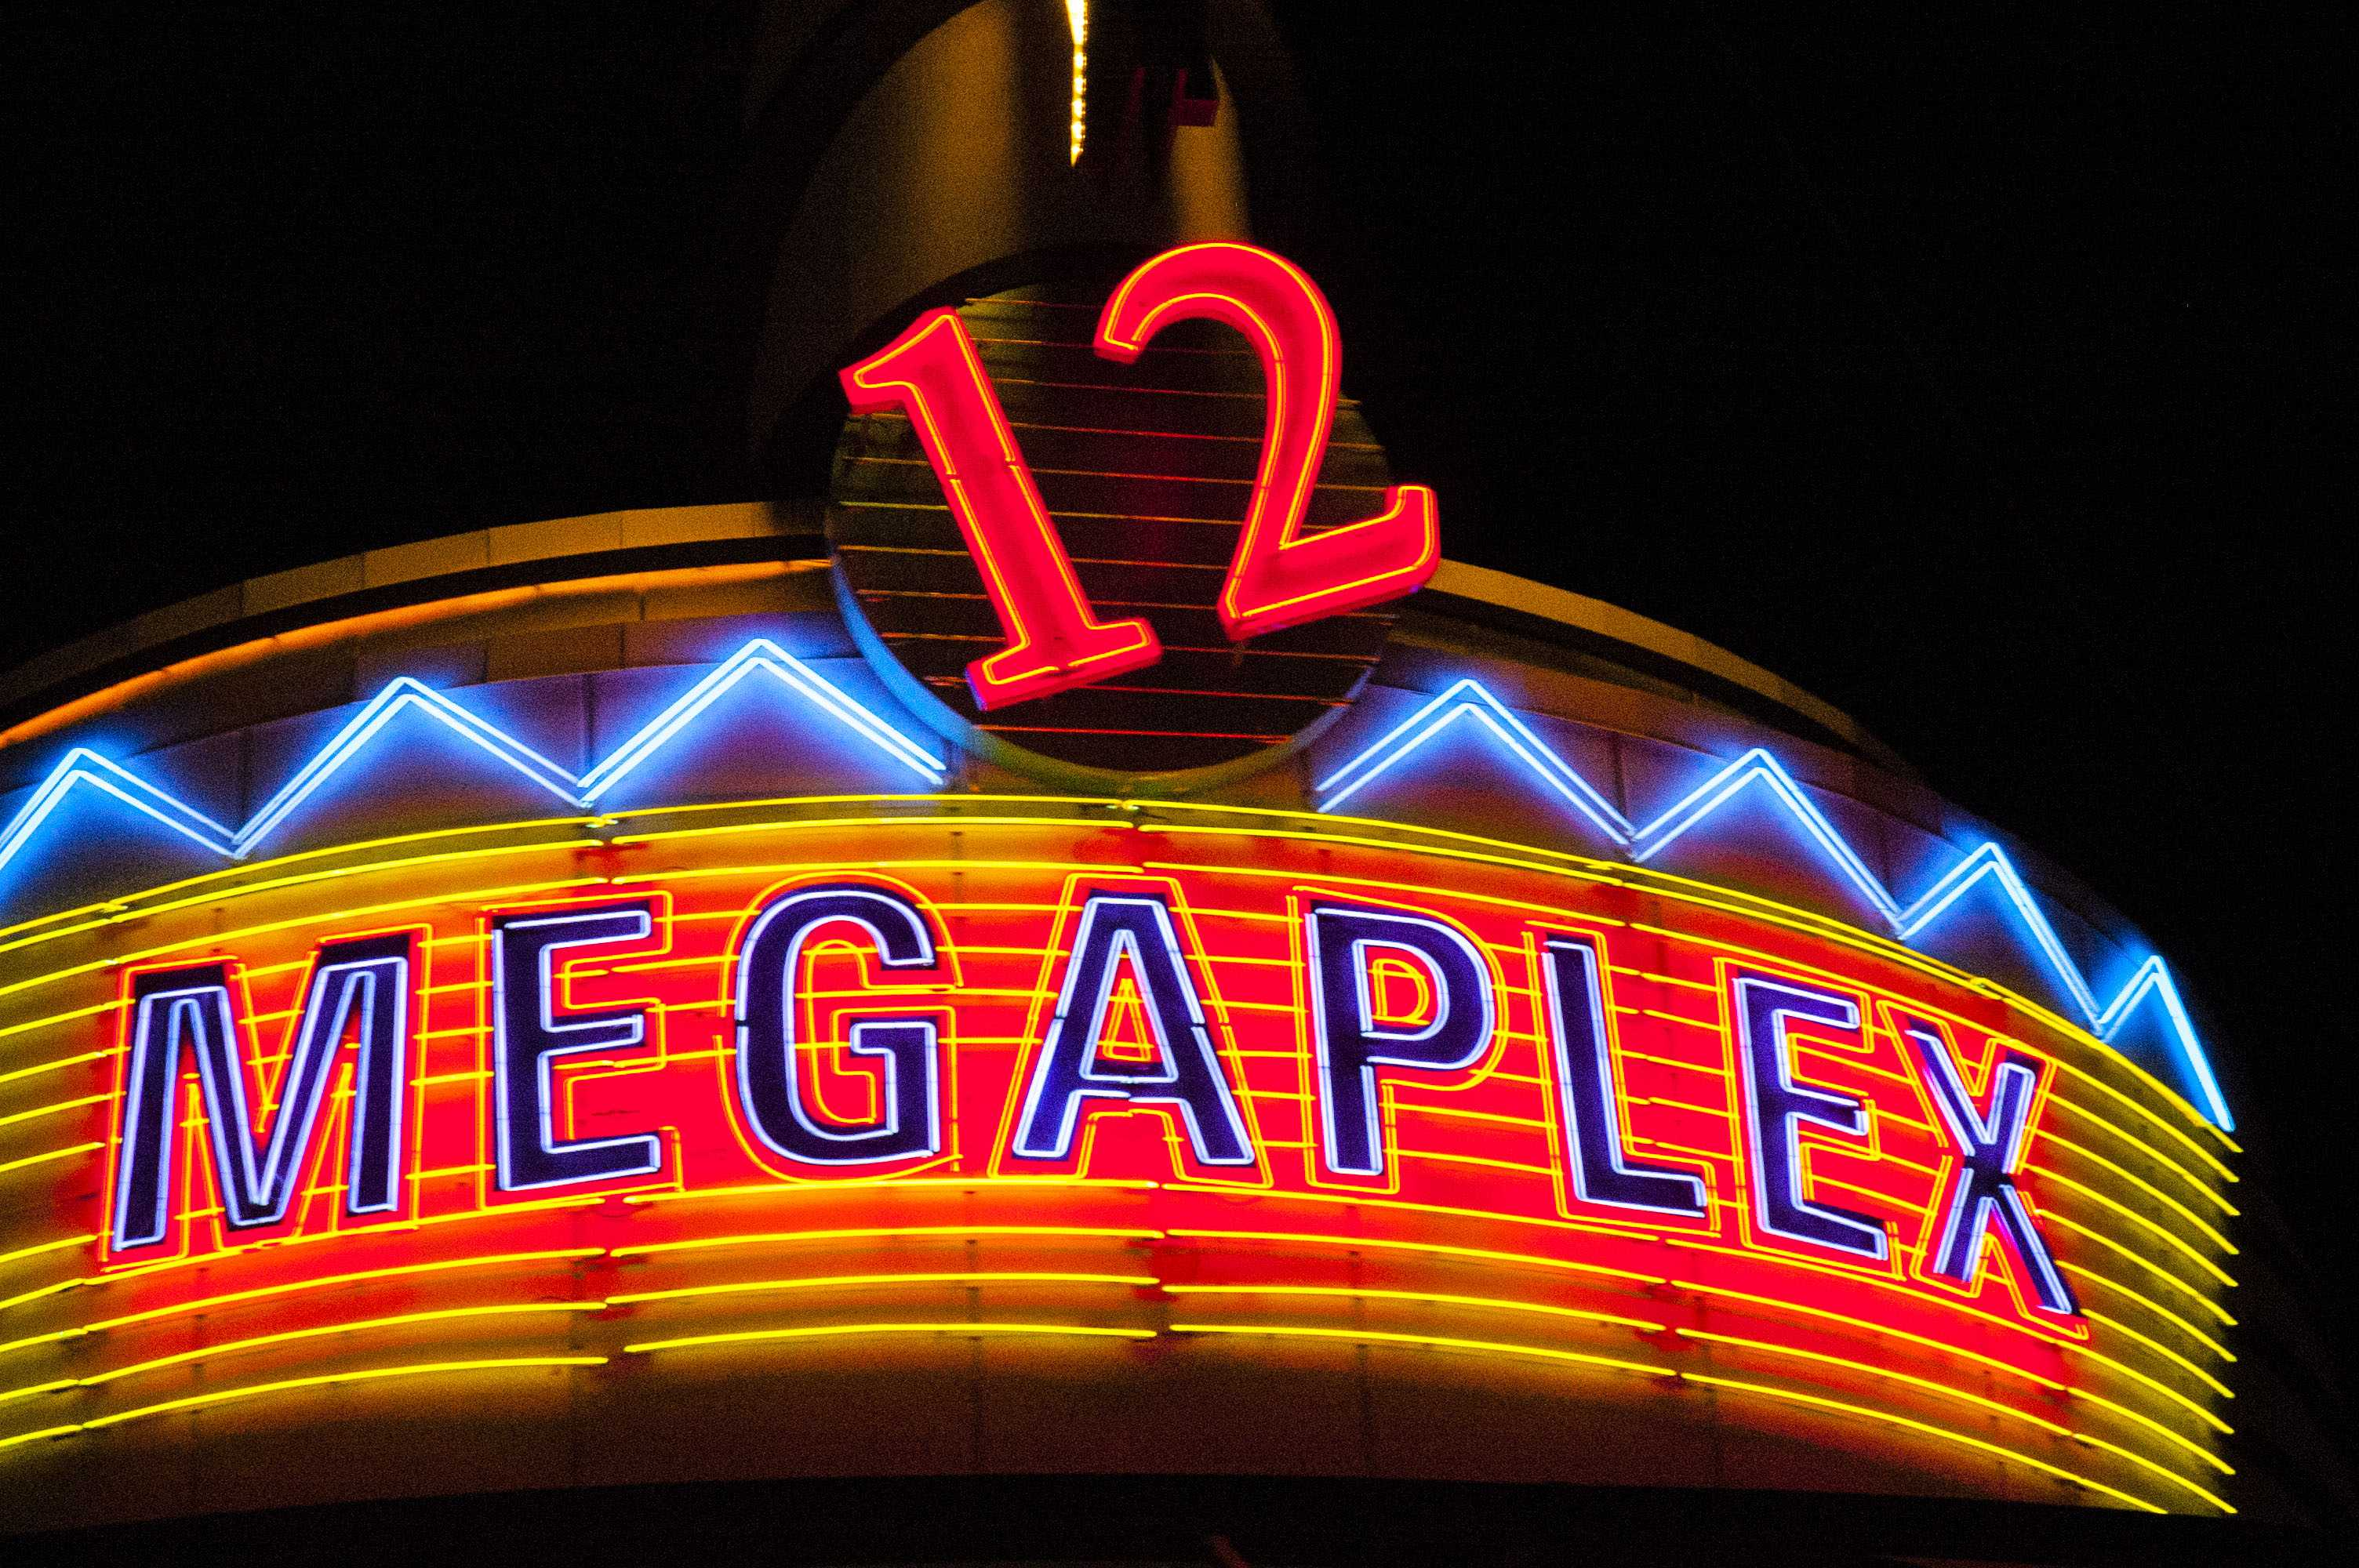 Photos of Megaplex Theaters at the Gateway on the evening of April 3rd, 2018.